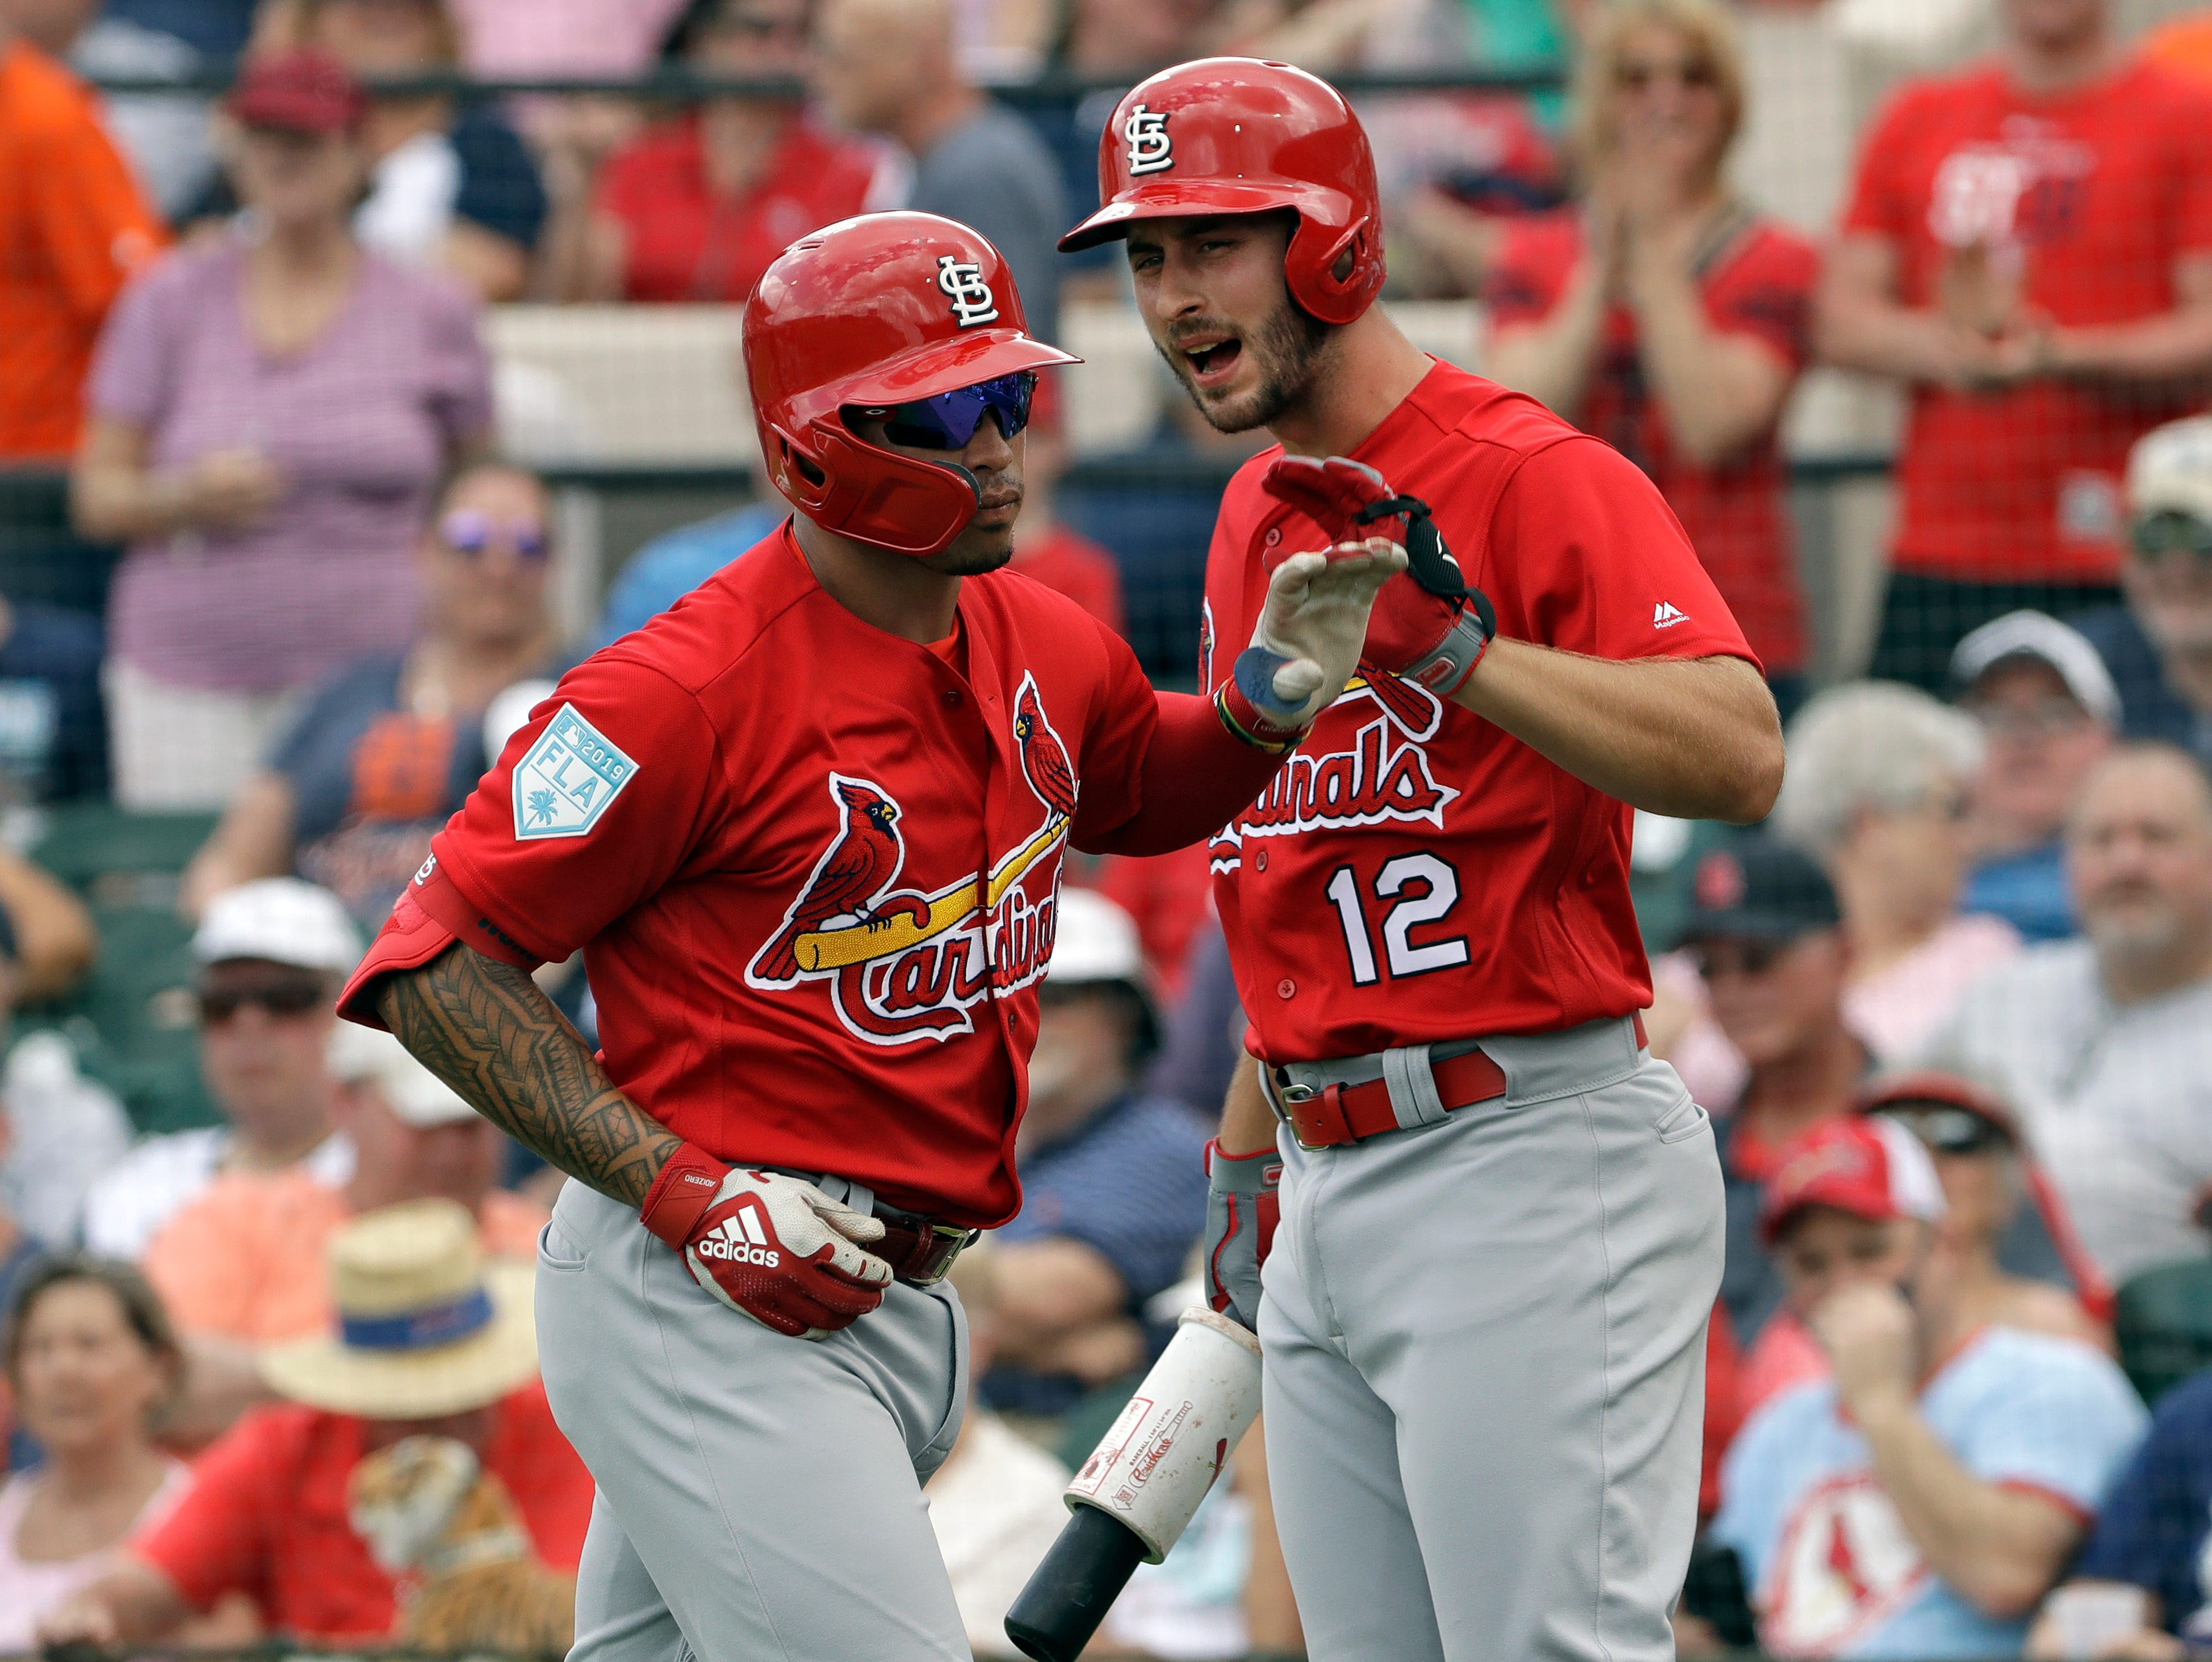 St. Louis Cardinals' Kolten Wong, left, celebrates his home run off Detroit Tigers starting pitcher Michael Fulmer with Paul DeJong  (12) during the first inning.